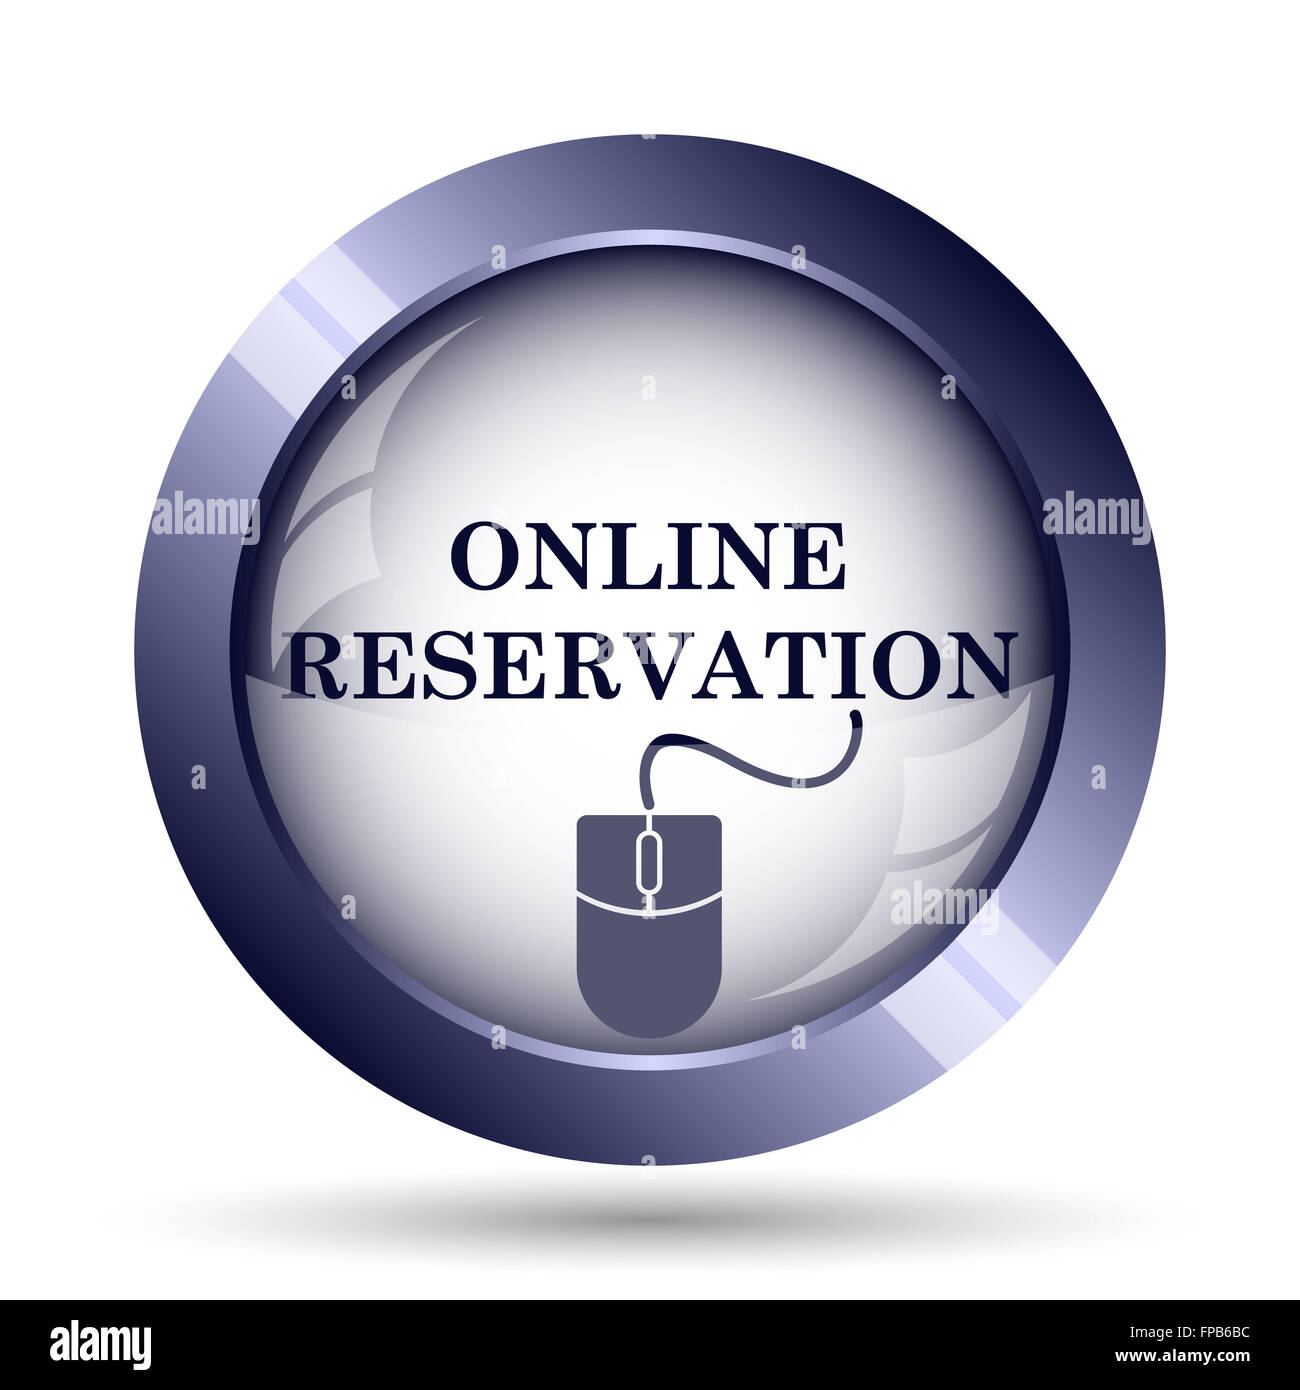 Online reservation icon. Internet button on white background. - Stock Image